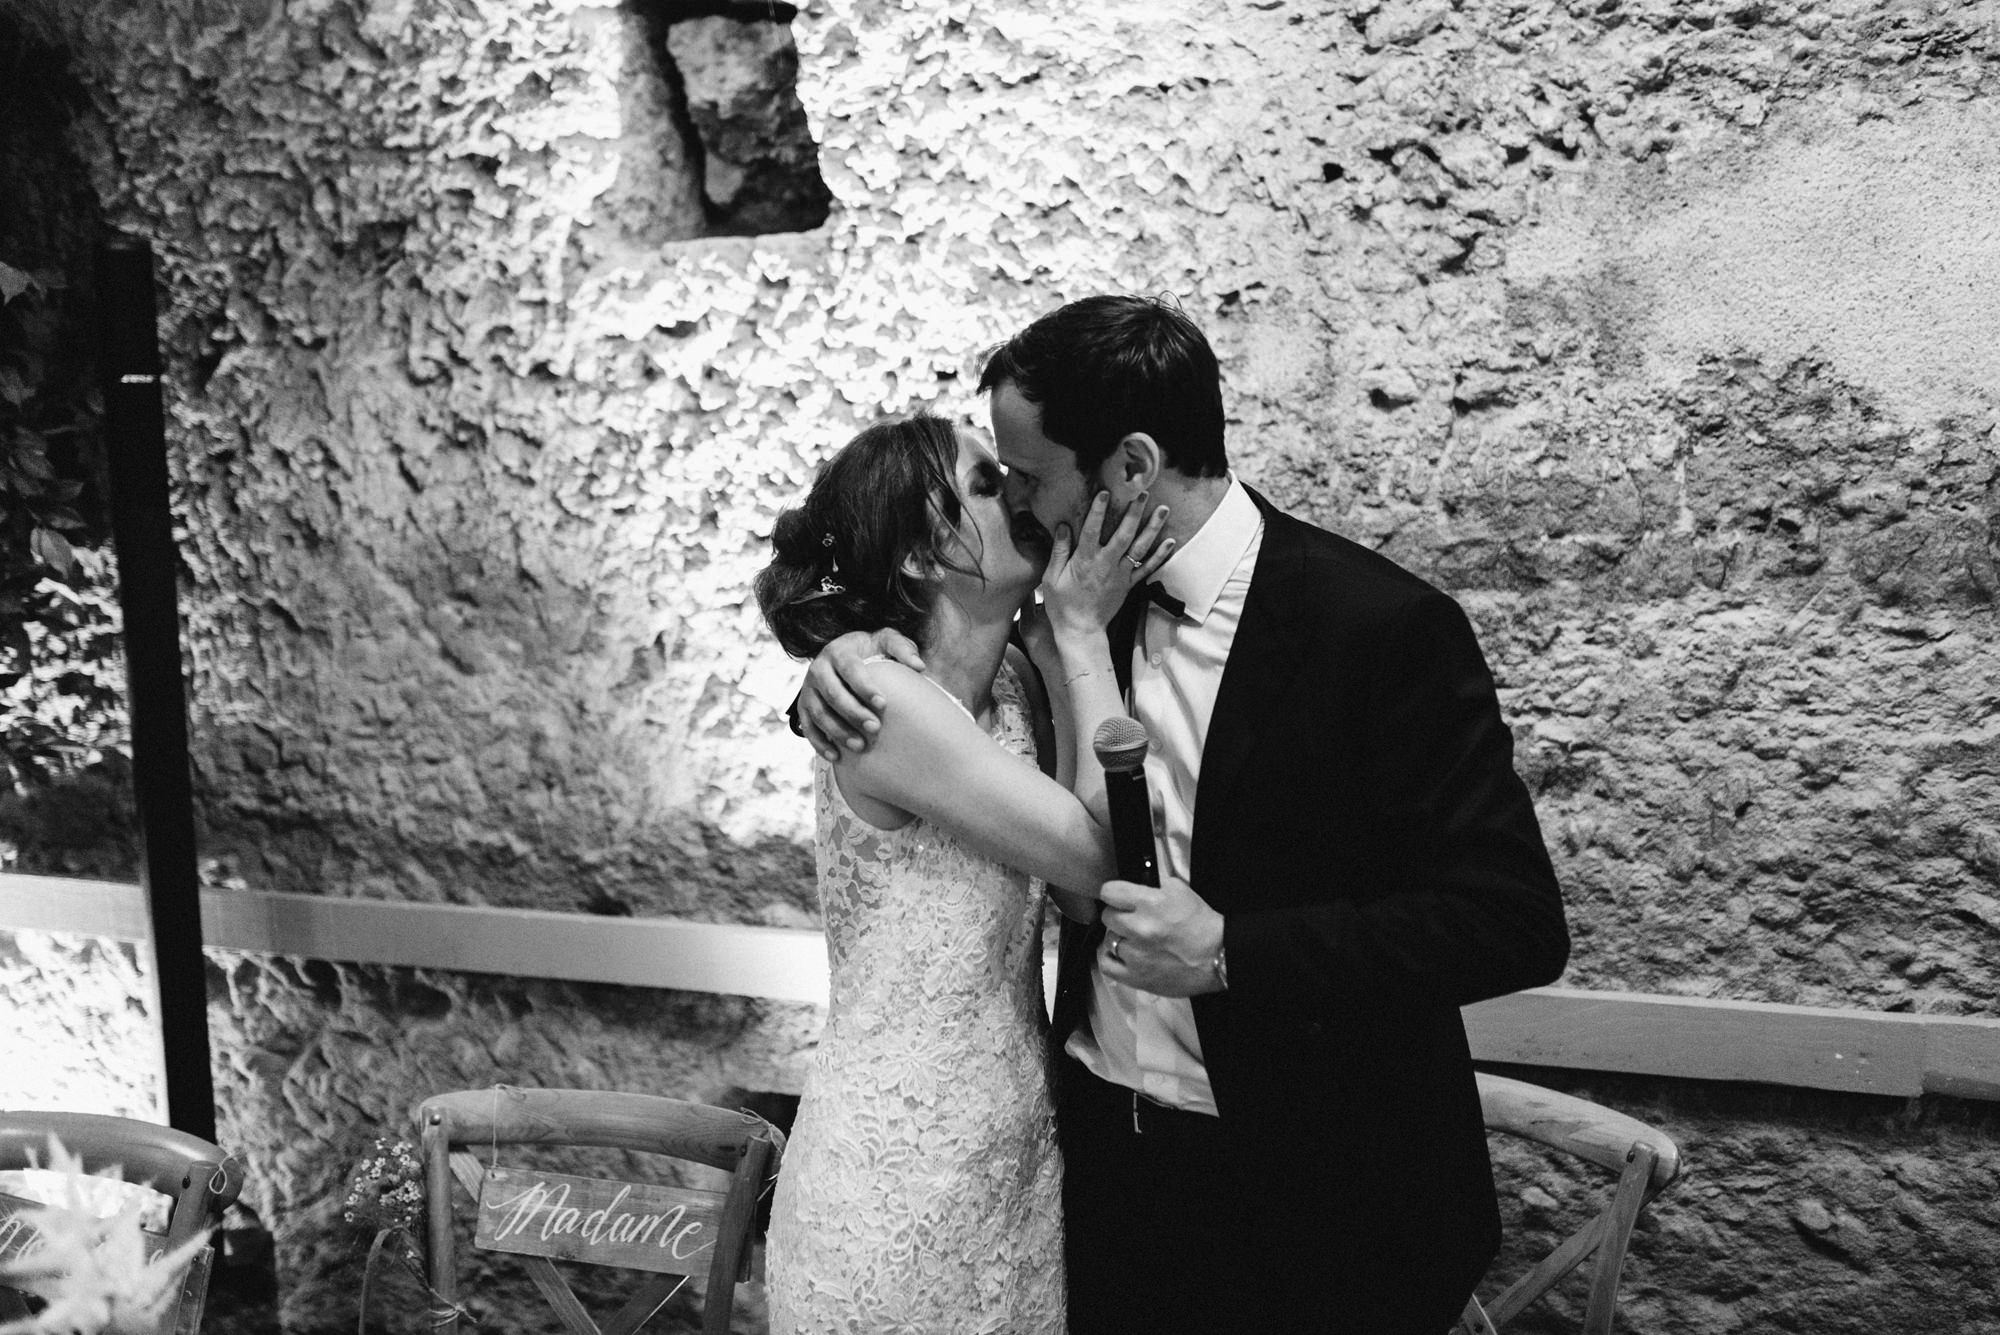 willybroussephotography-wedding-loirevalley-bidaudieres-laura-mathieu-124